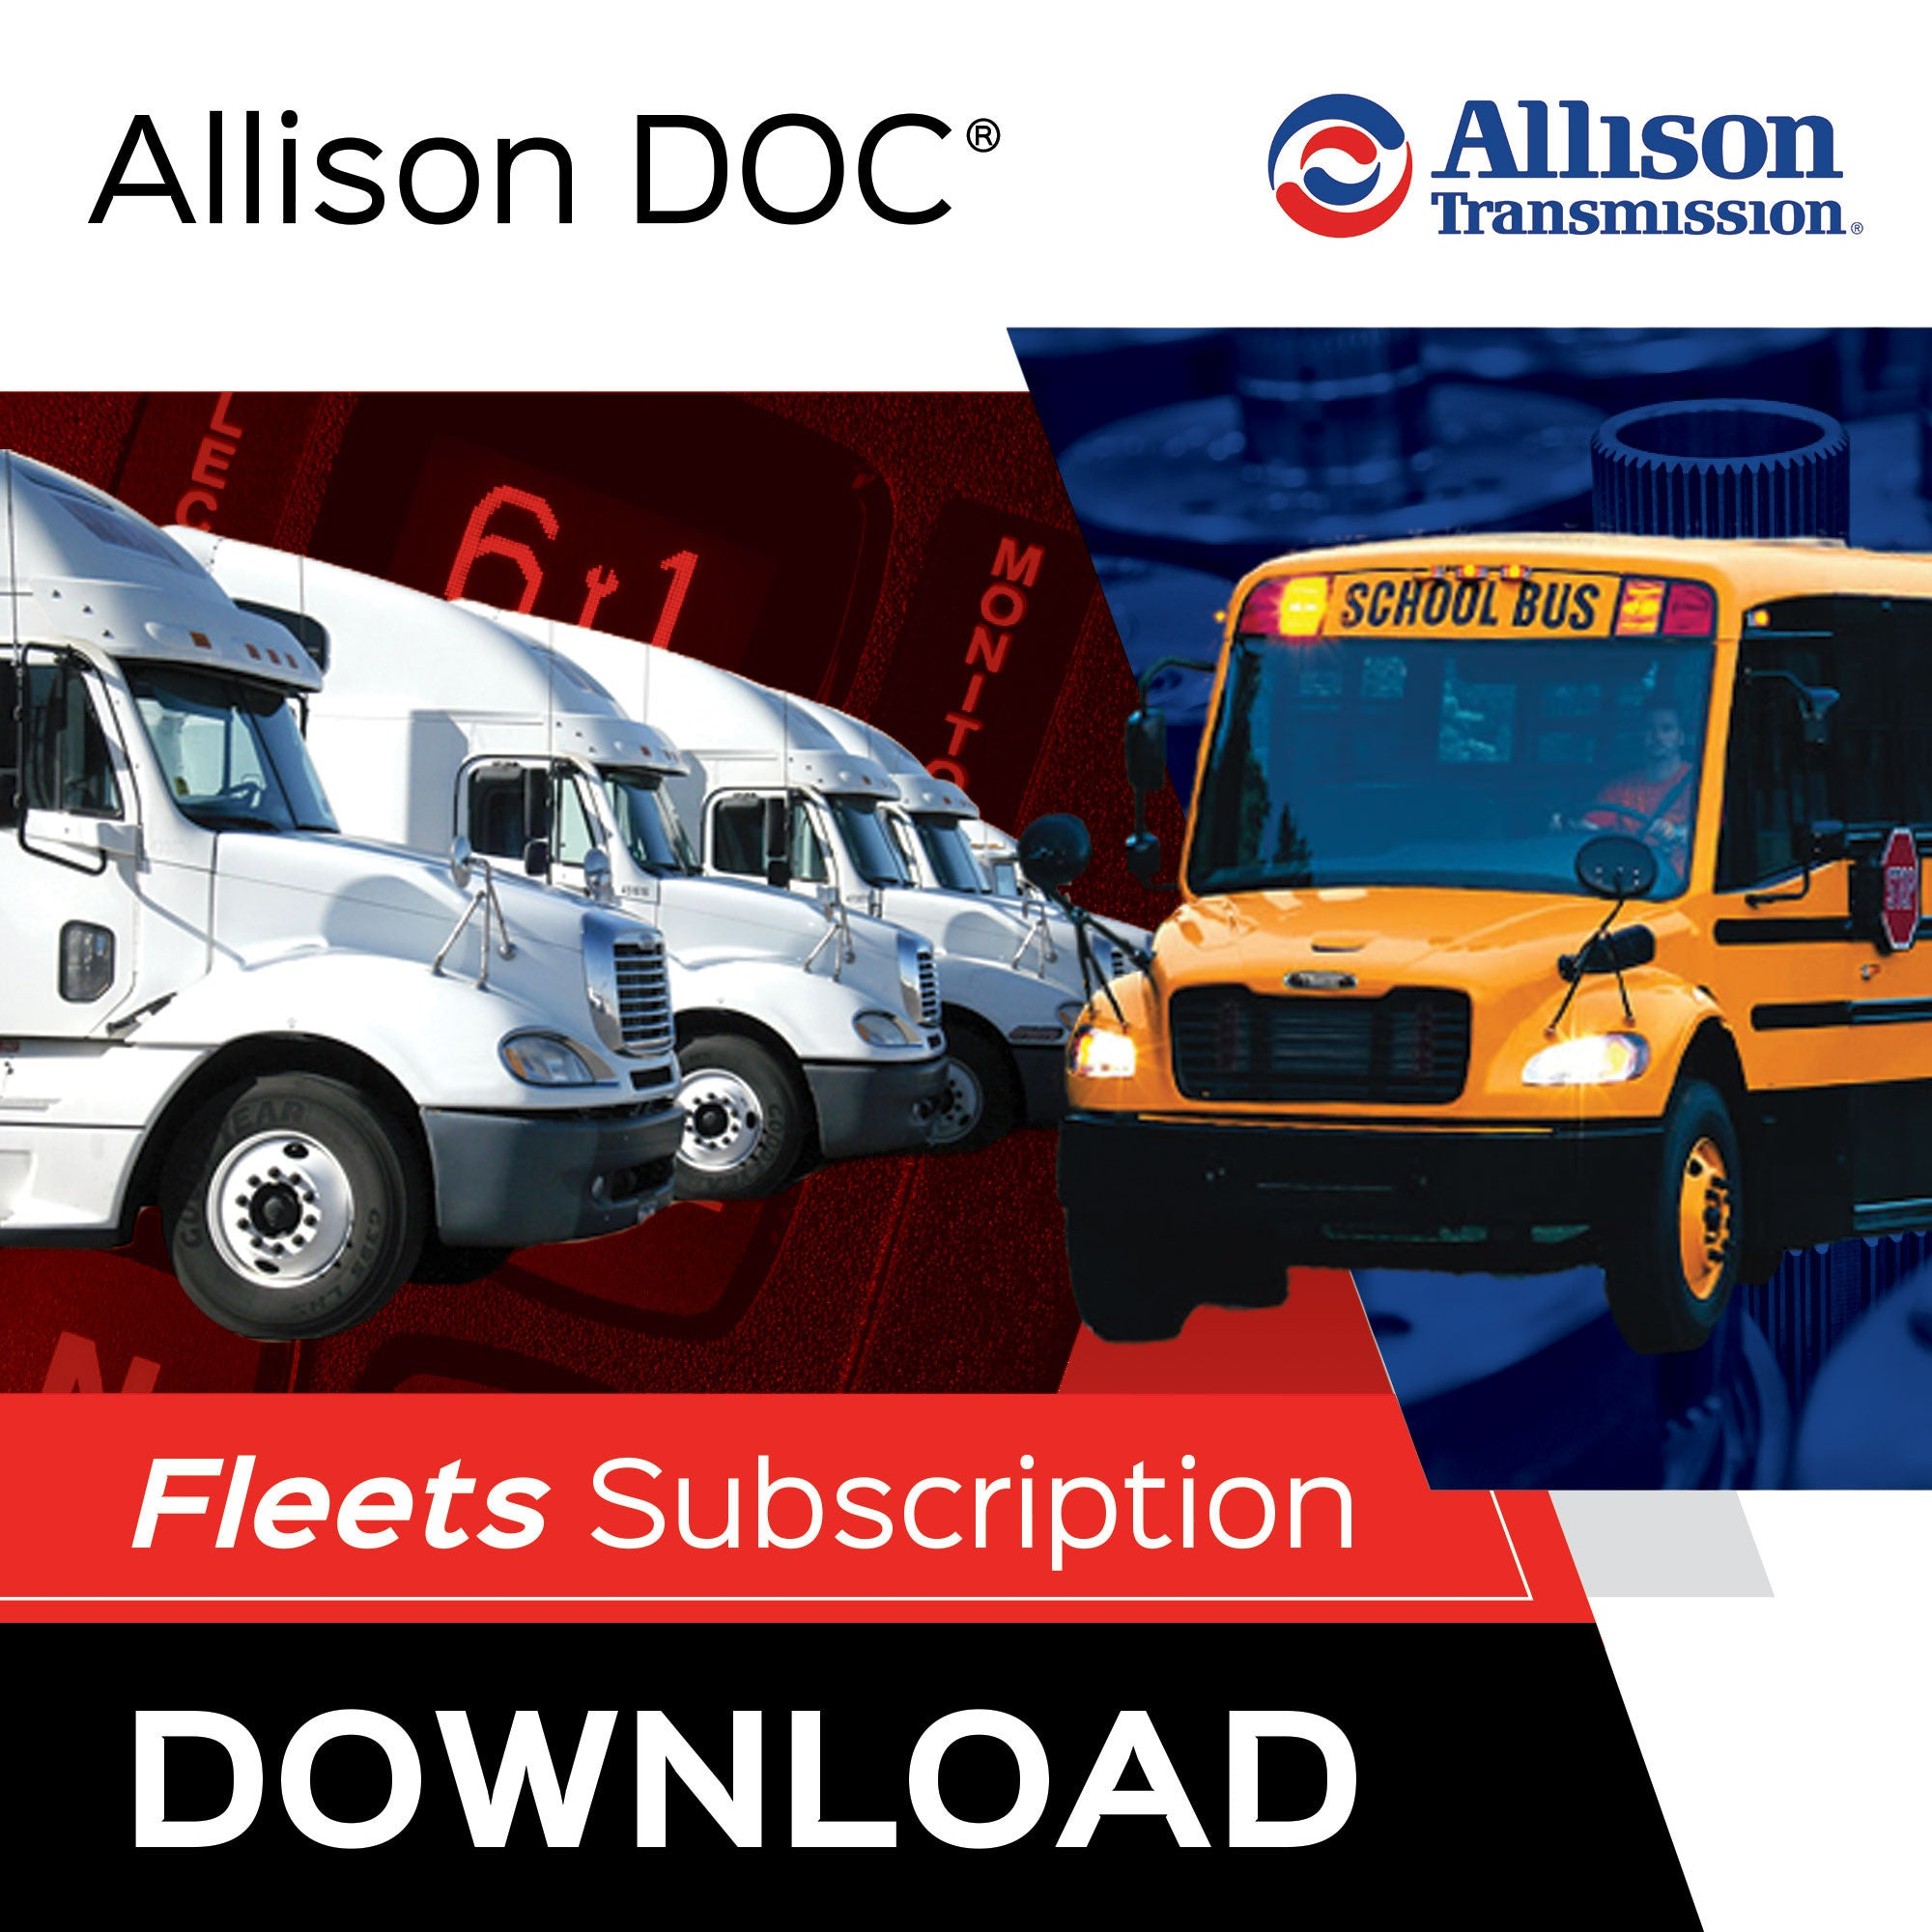 Allison DOCR Fleets For Download